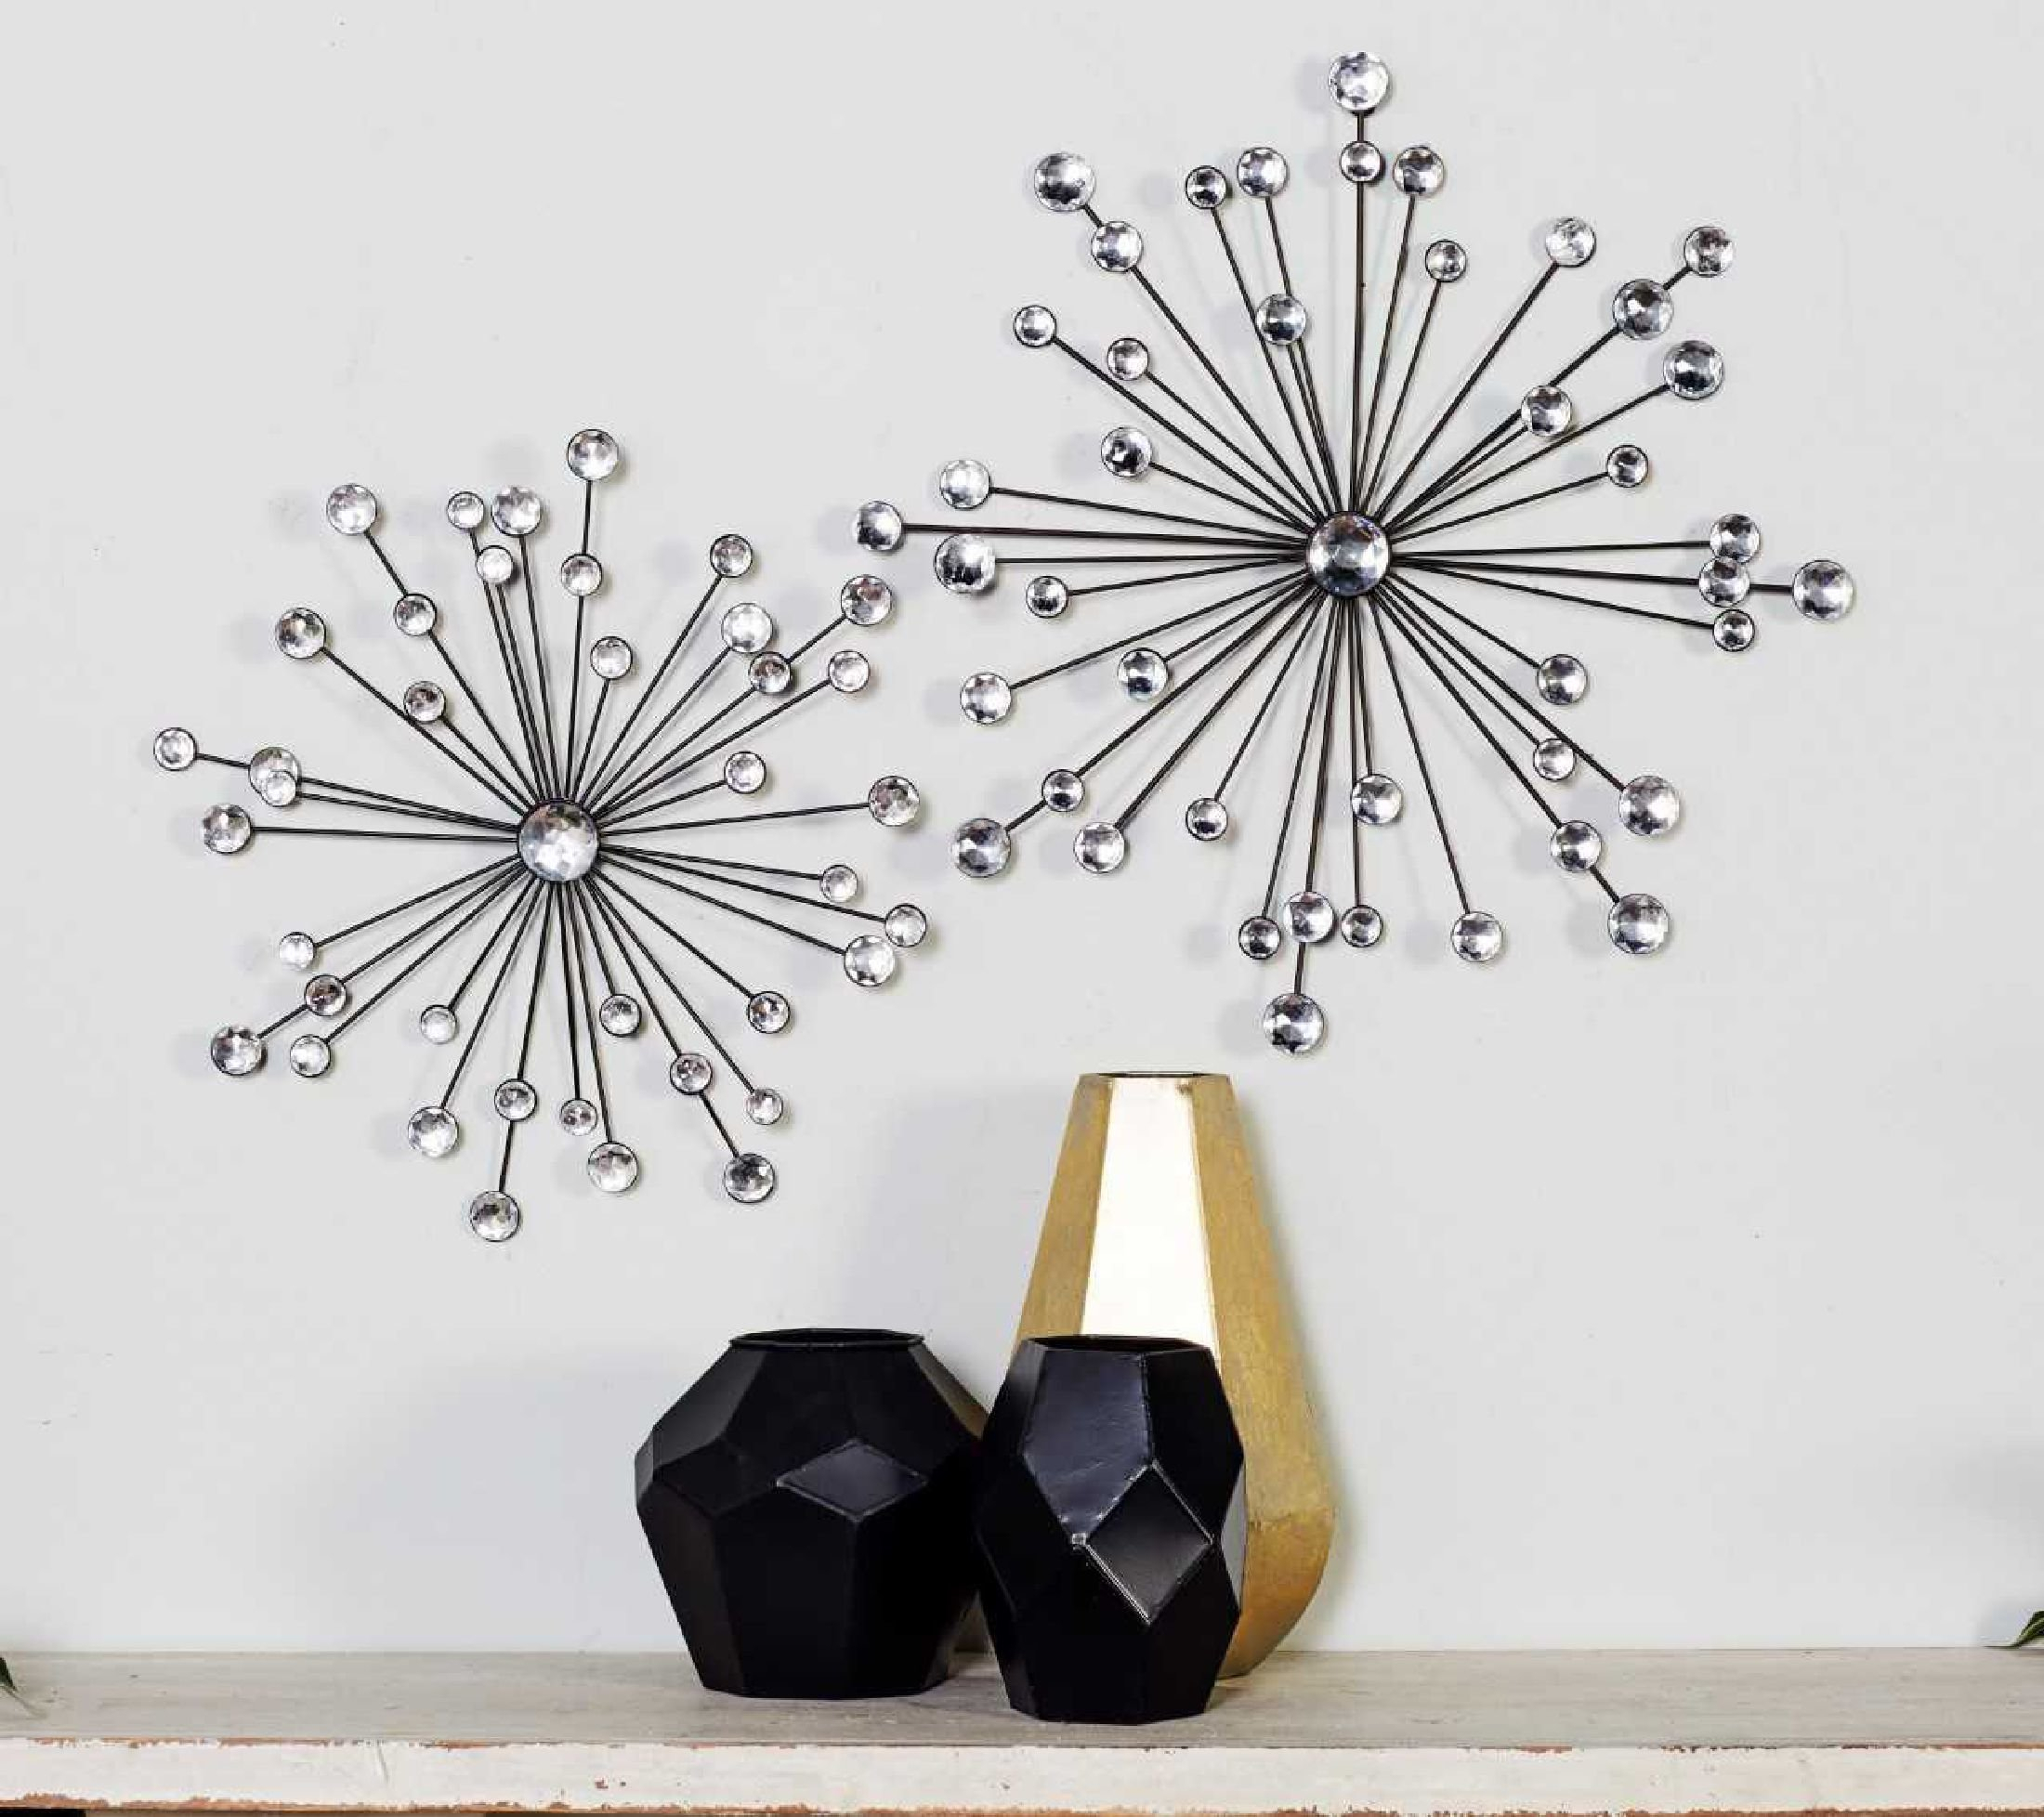 3 Piece Acrylic Burst Wall Decor Sets (Set Of 3) Intended For Most Recent Cole & Grey 3 Piece Metal And Acrylic Wall Décor Set & Reviews (Gallery 1 of 20)